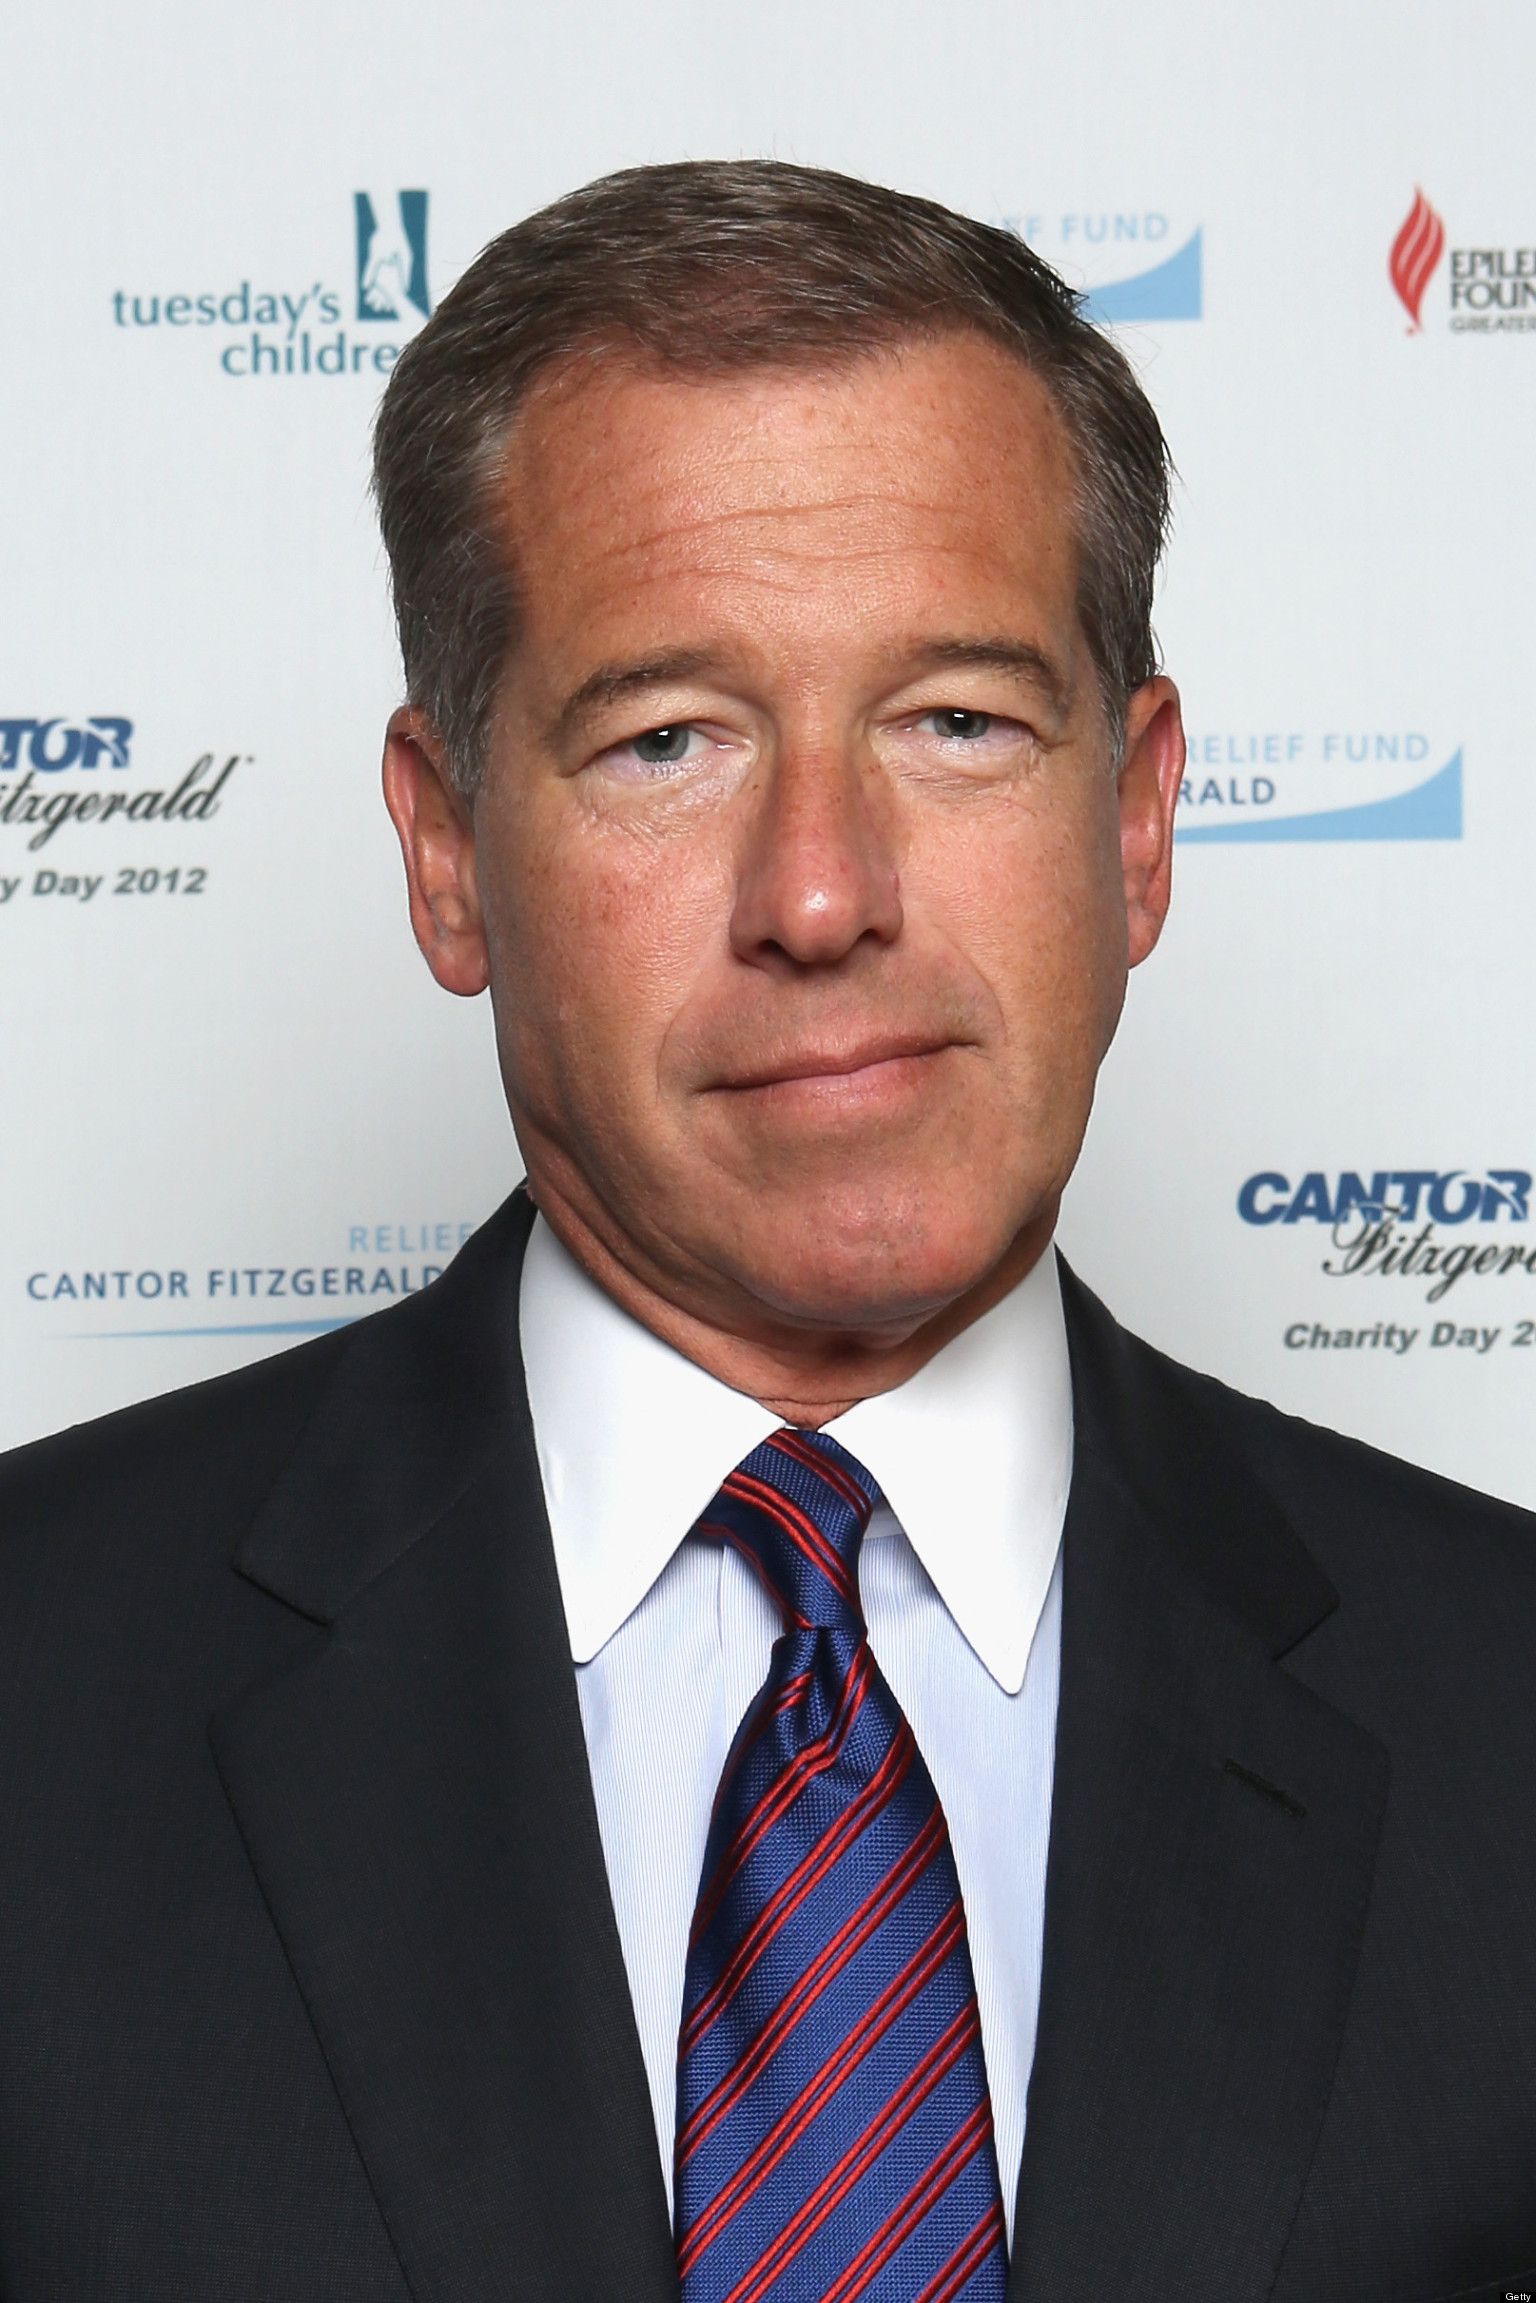 brian williams hip hop